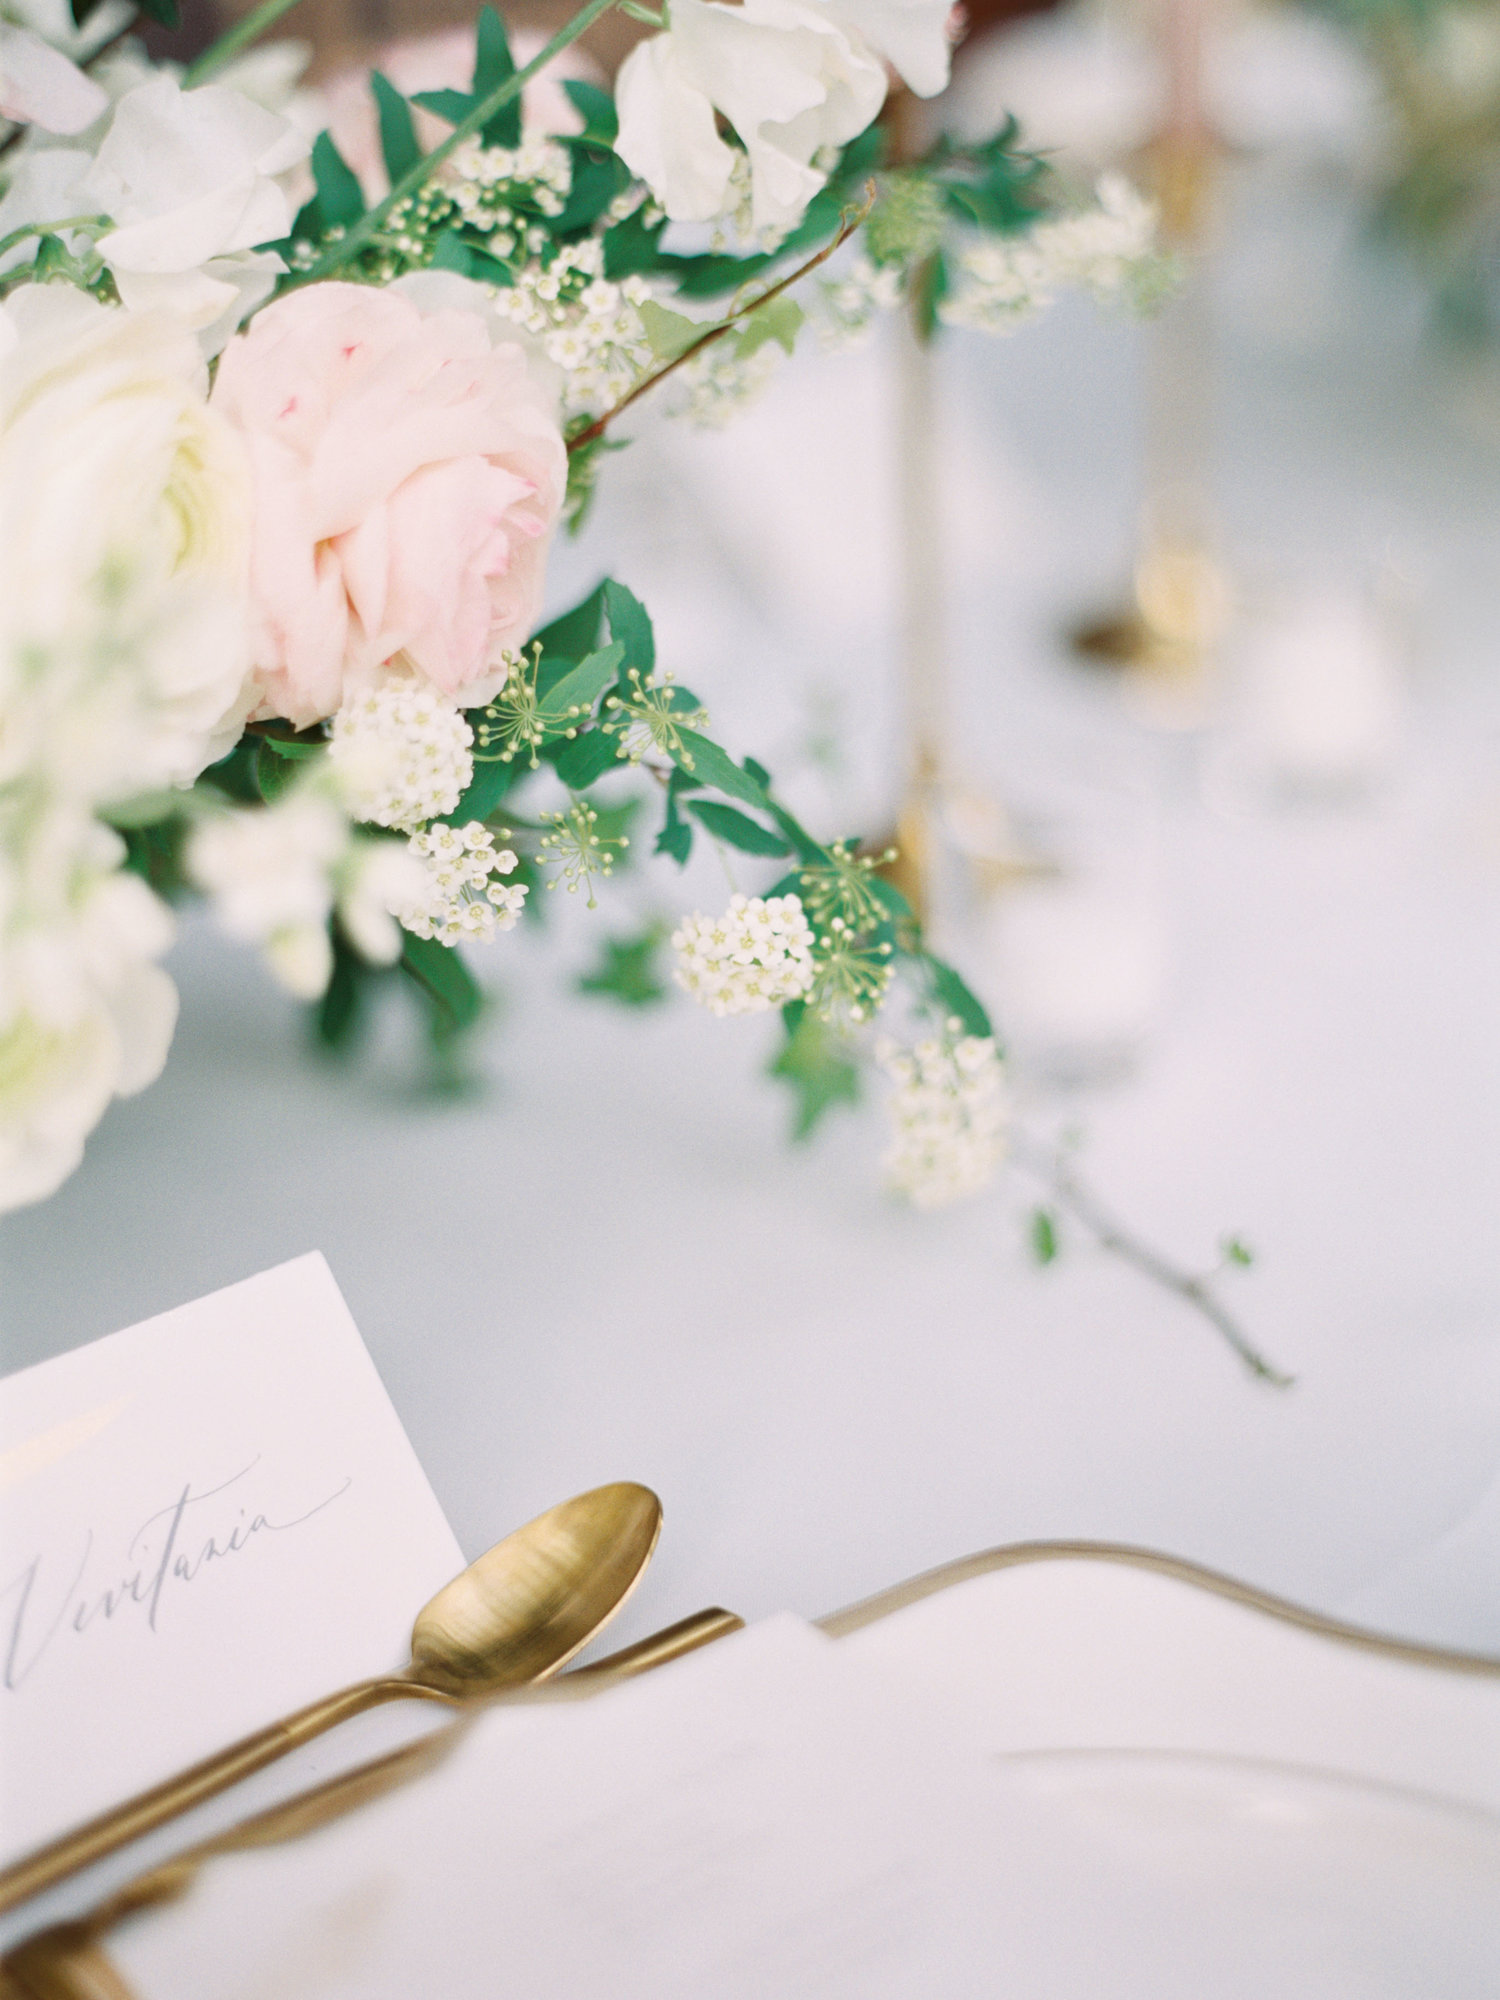 elegant bridal shower in soft pastel hues studio june film photographer and stylist in indonesia